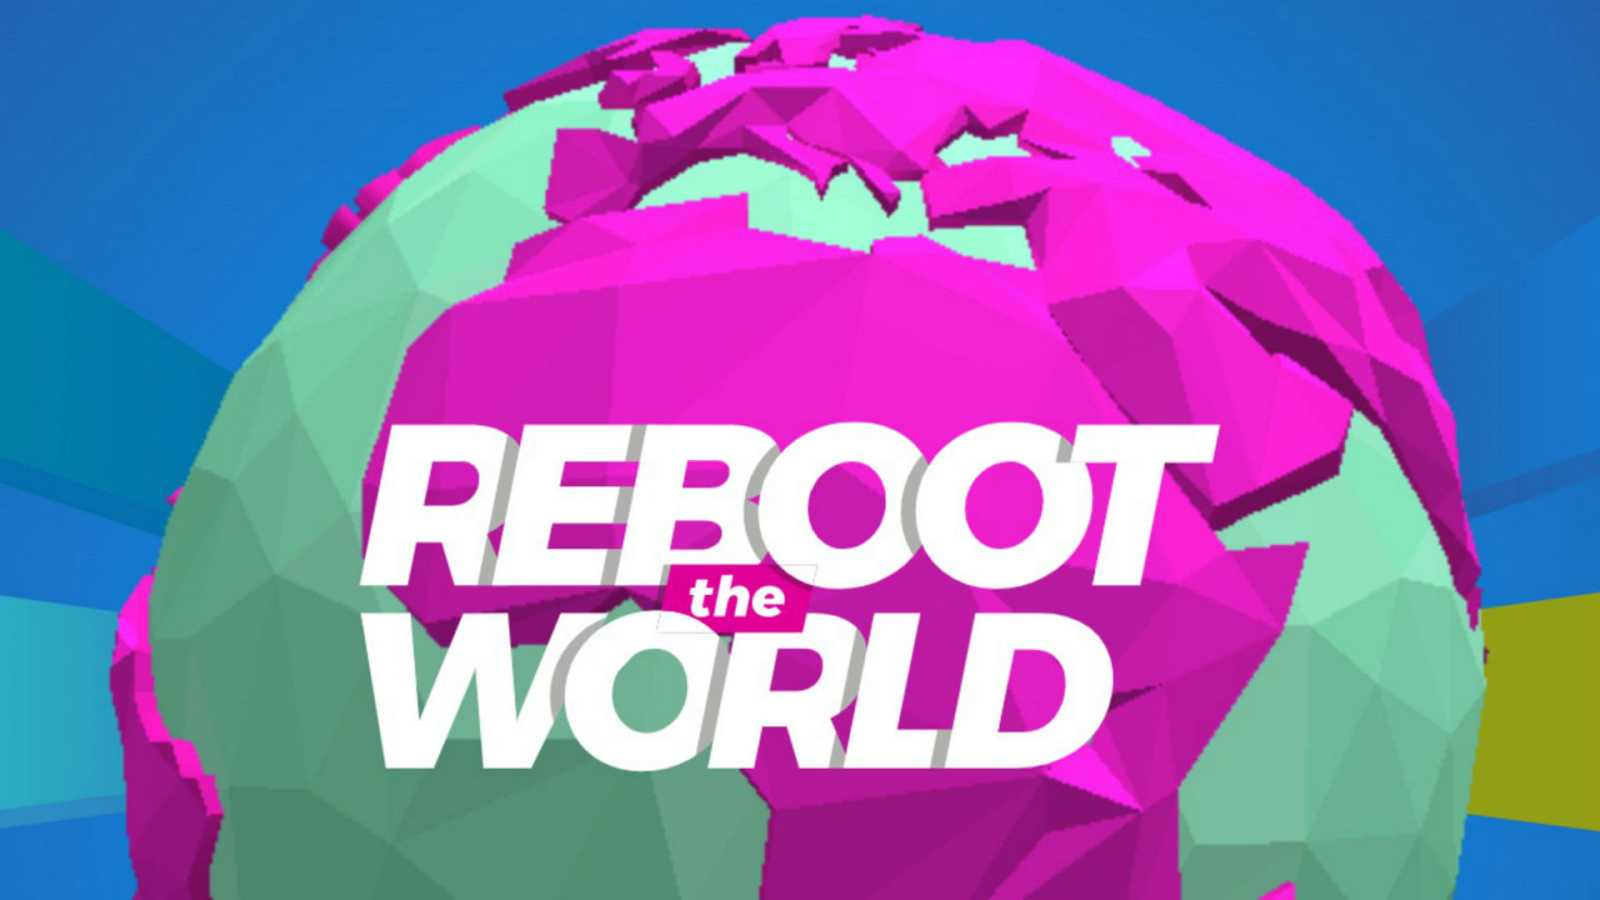 5.0 - Reboot the World, Campus Party se hace virtual - 14/07/20 - escuchar ahora